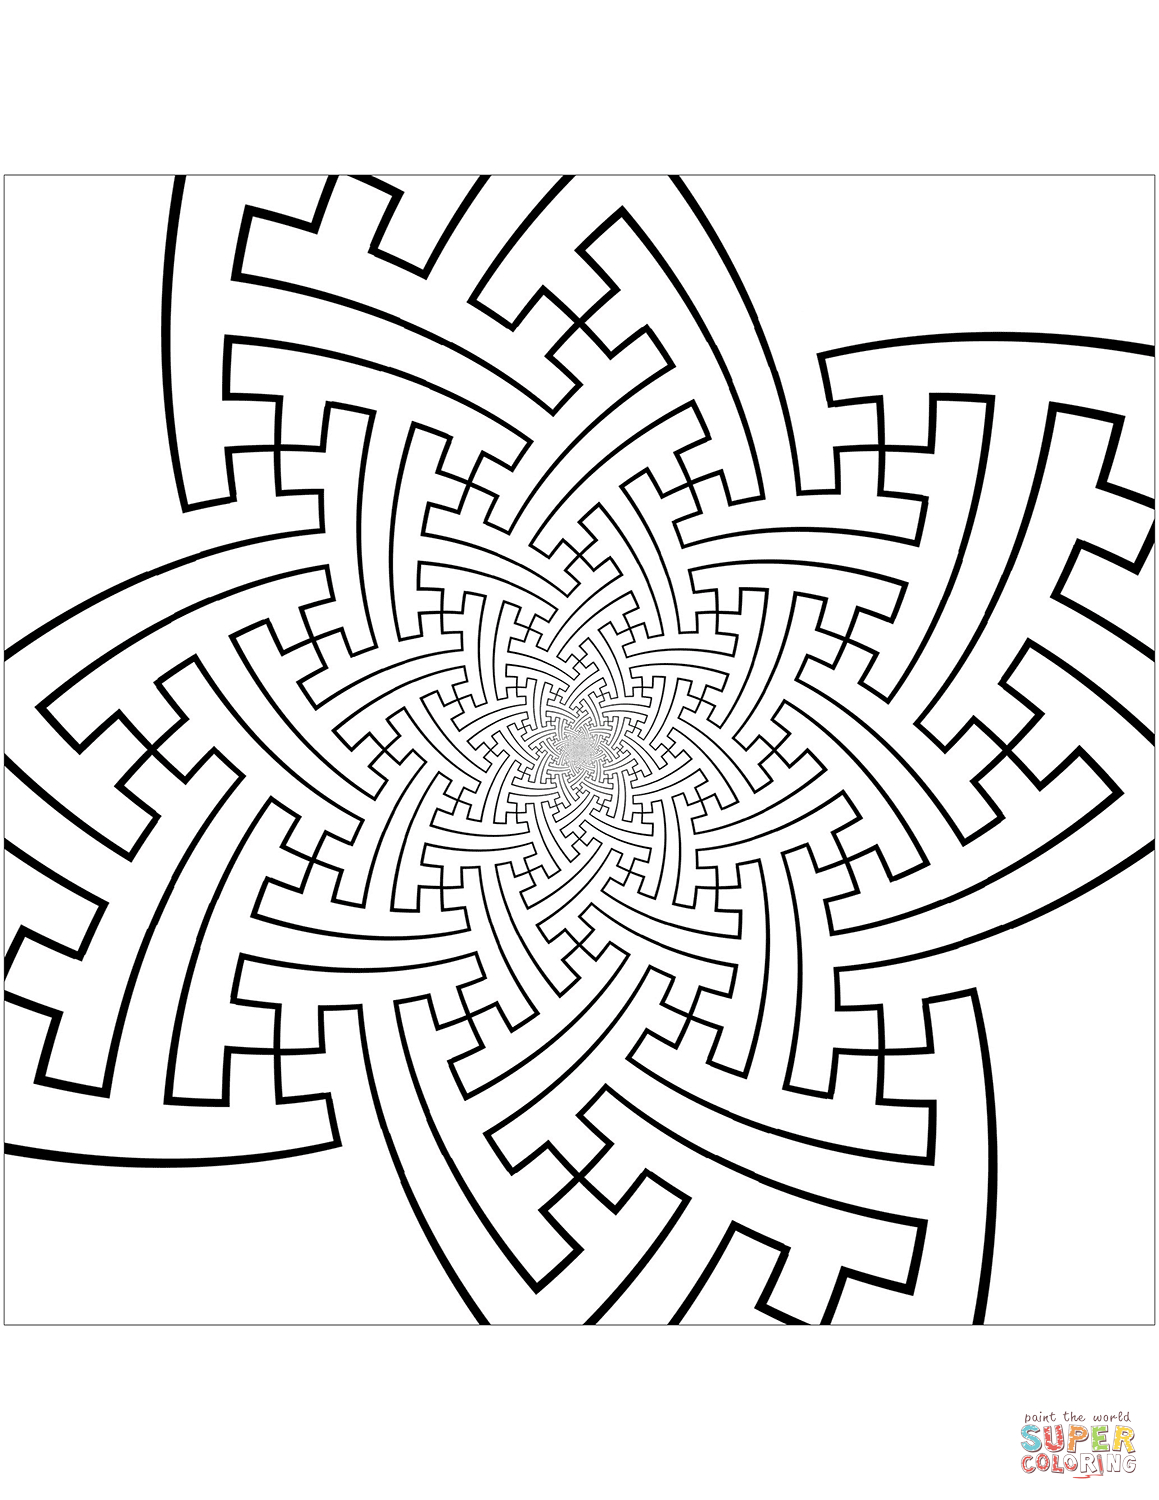 30+ Brilliant Picture of Pattern Coloring Pages